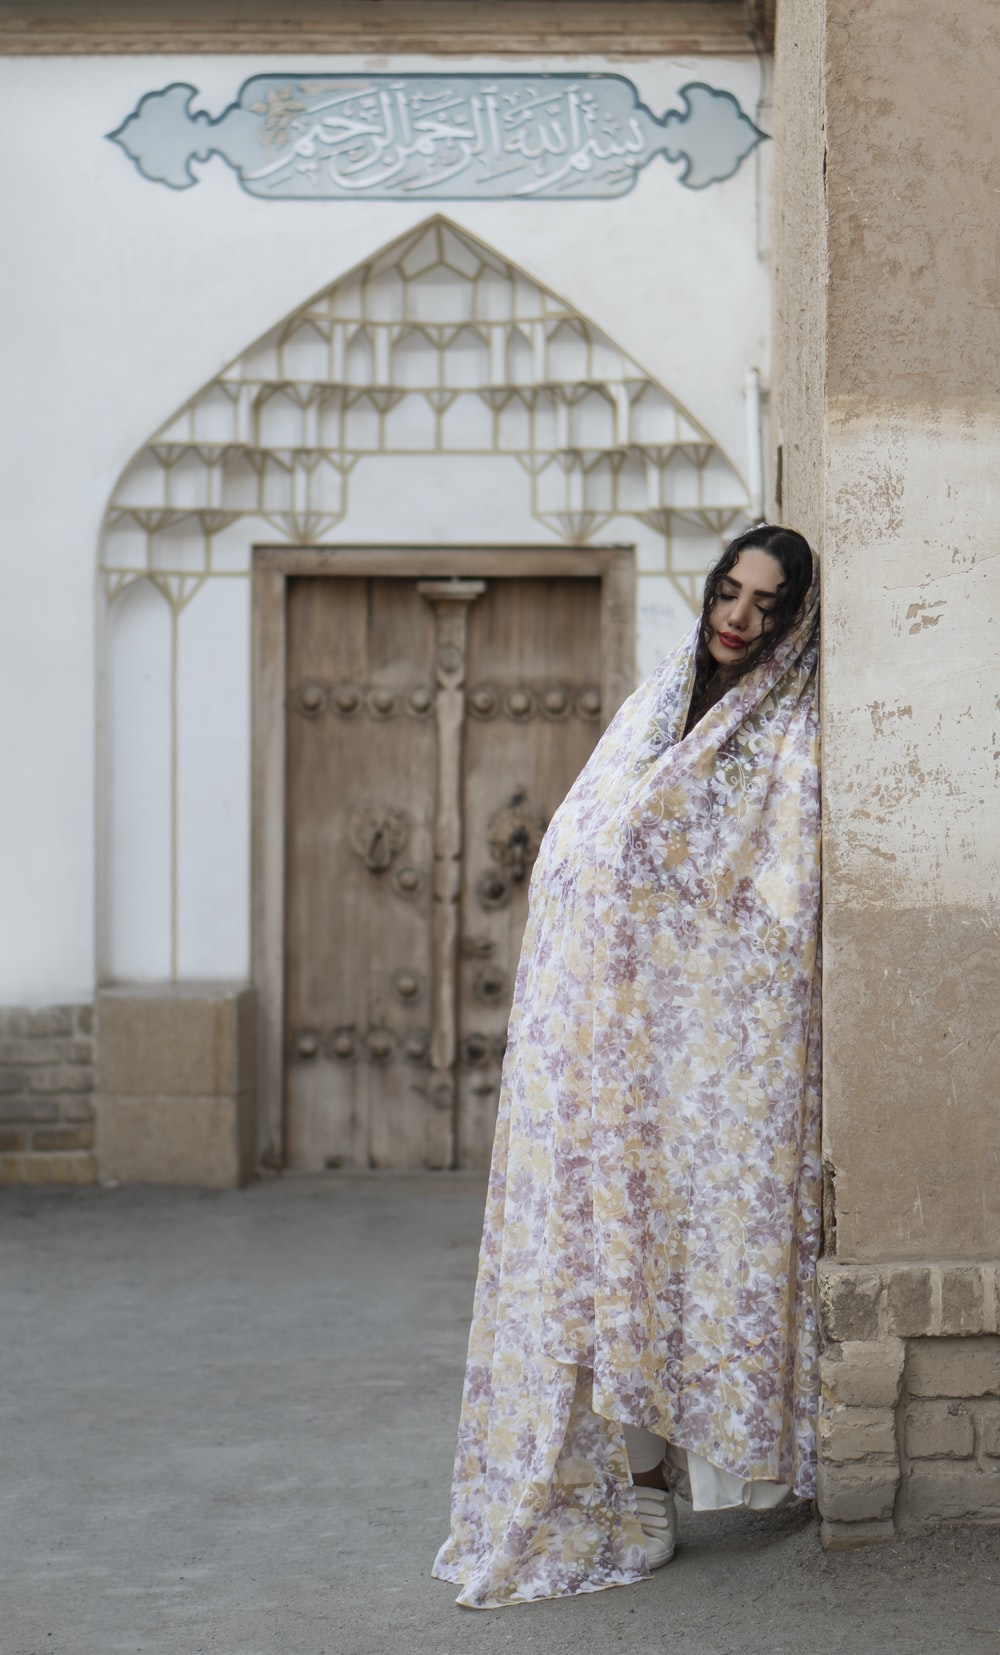 woman in white and pink floral hijab standing near gray concrete wall during daytime